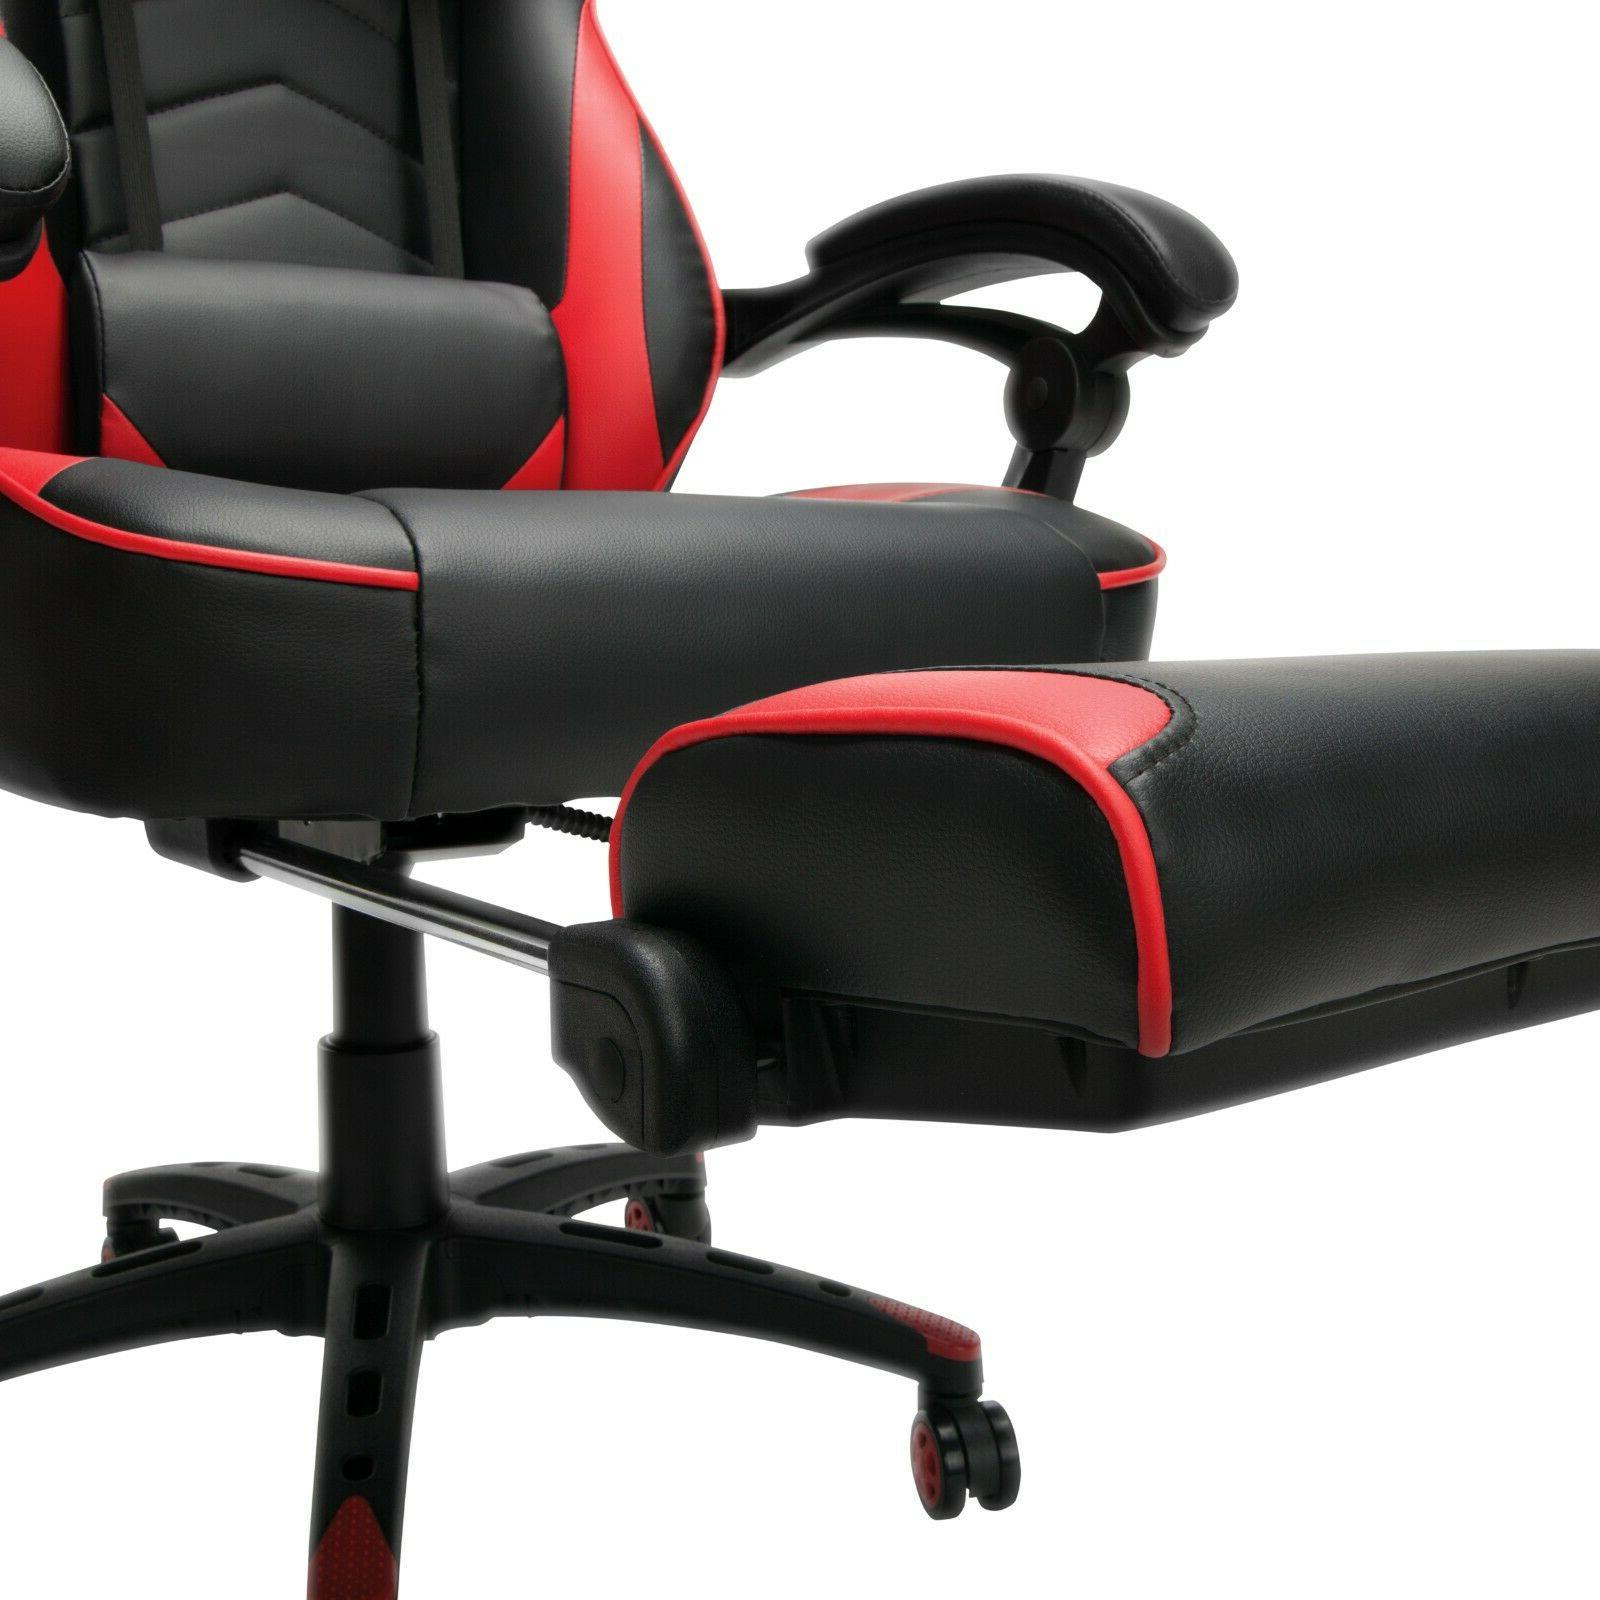 RESPAWN Racing Gaming Chair W/Foot